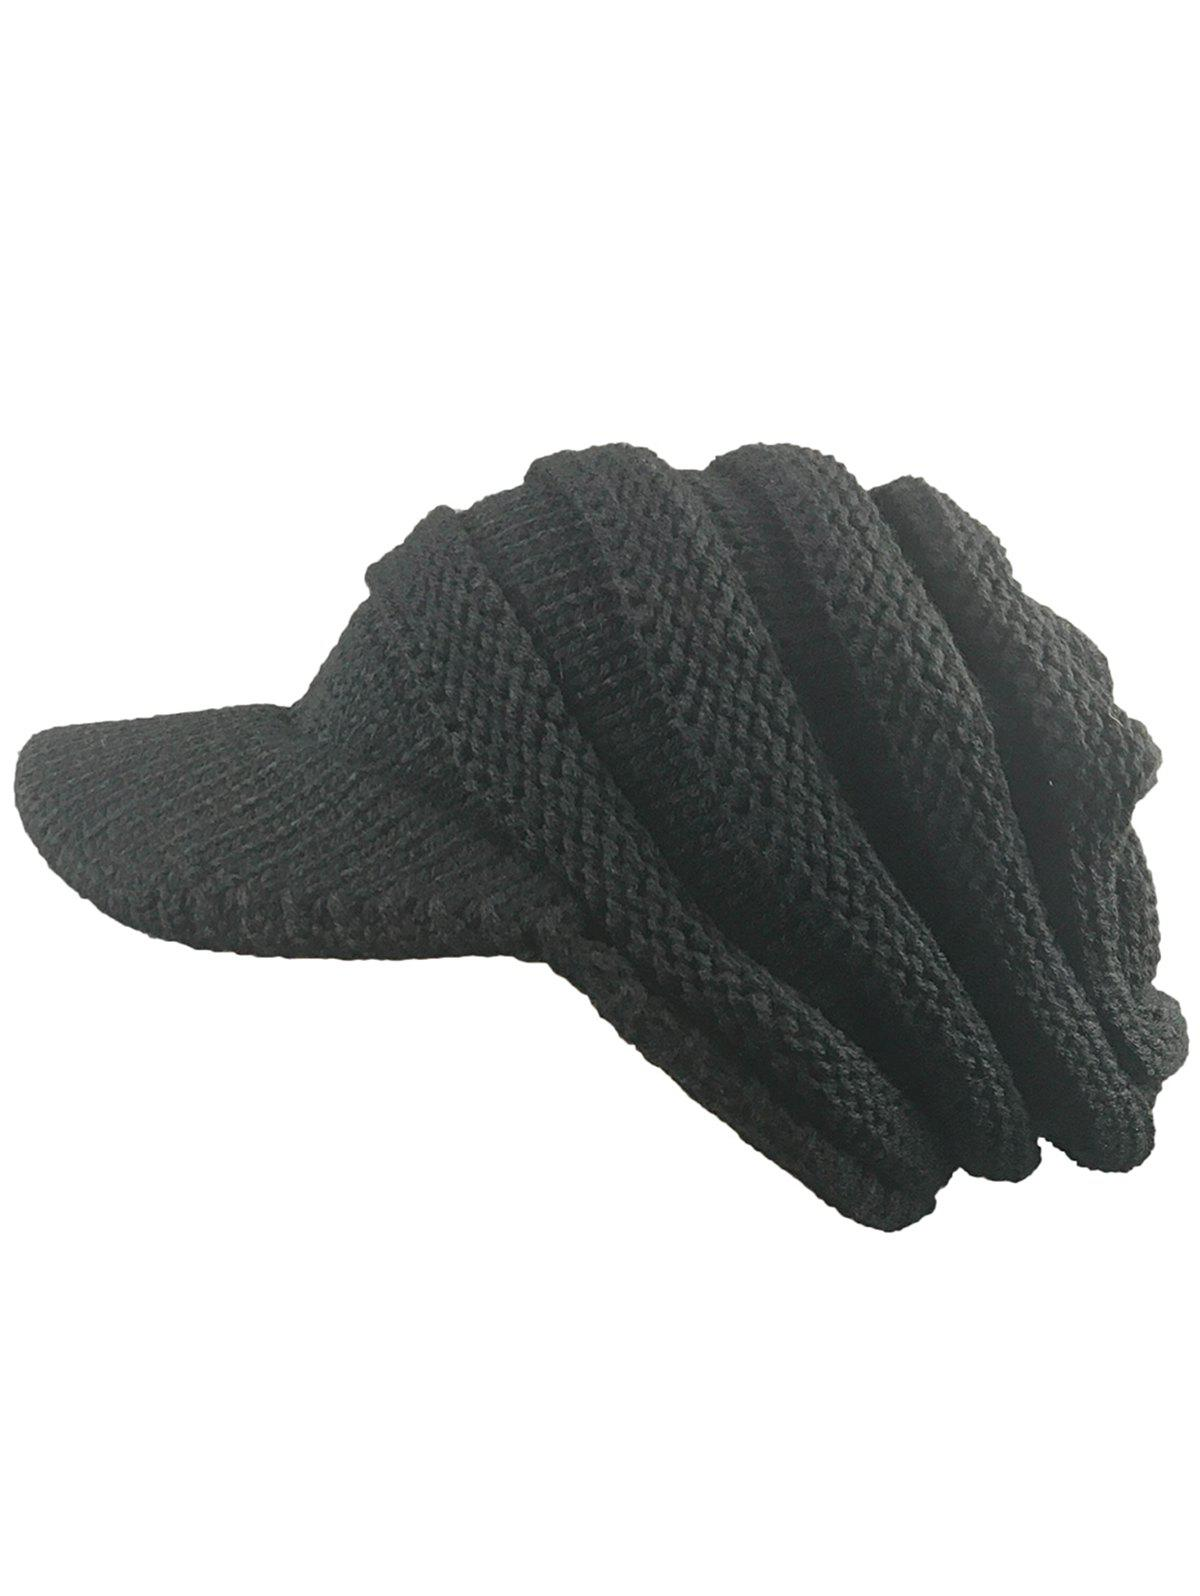 Outdoor Striped Pattern Ribbed Knit Beanie Hat - BLACK